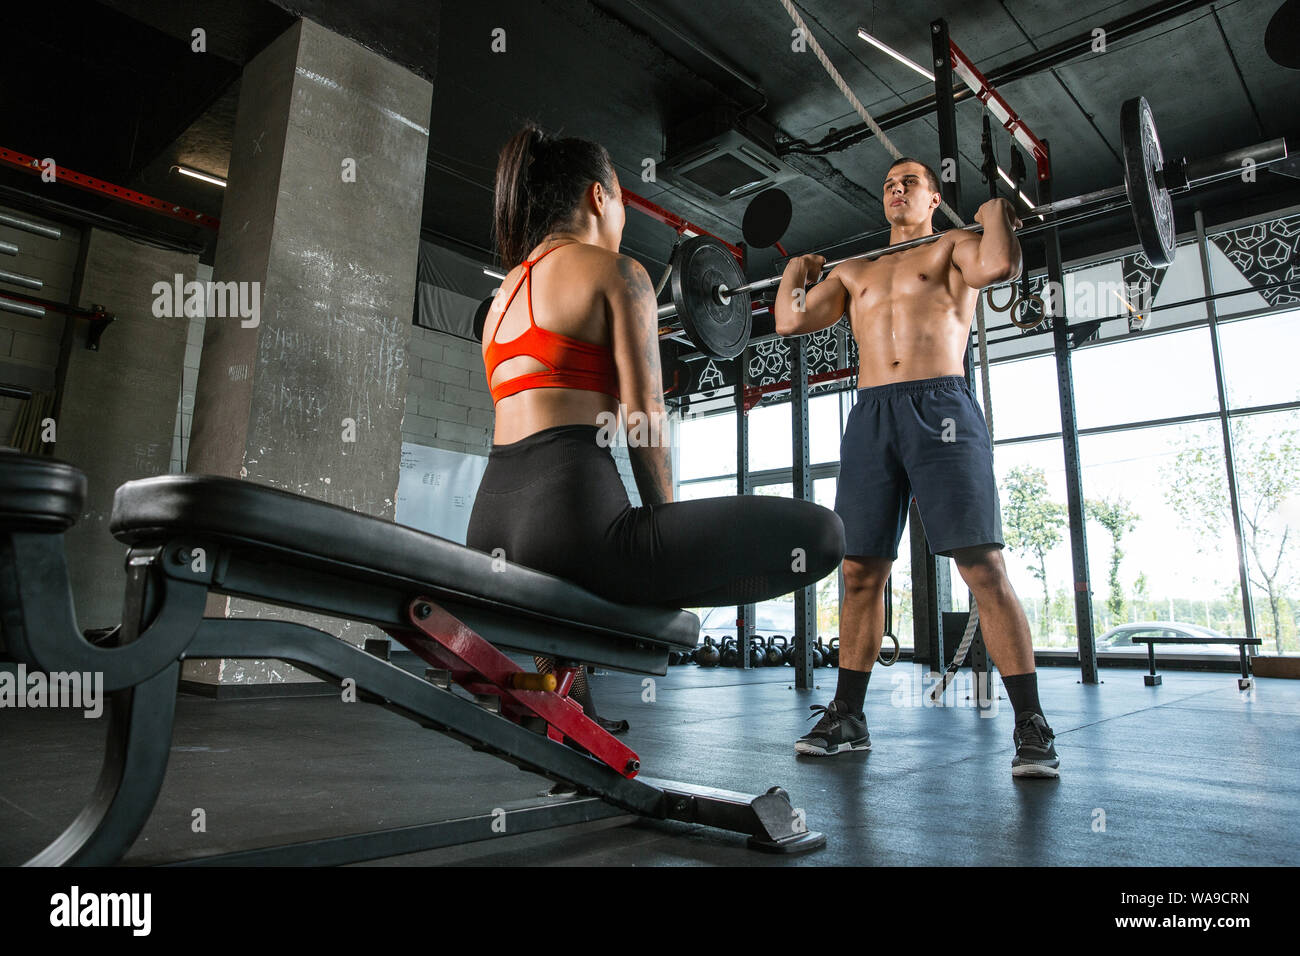 A muscular athletes doing workout at the gym  Gymnastics